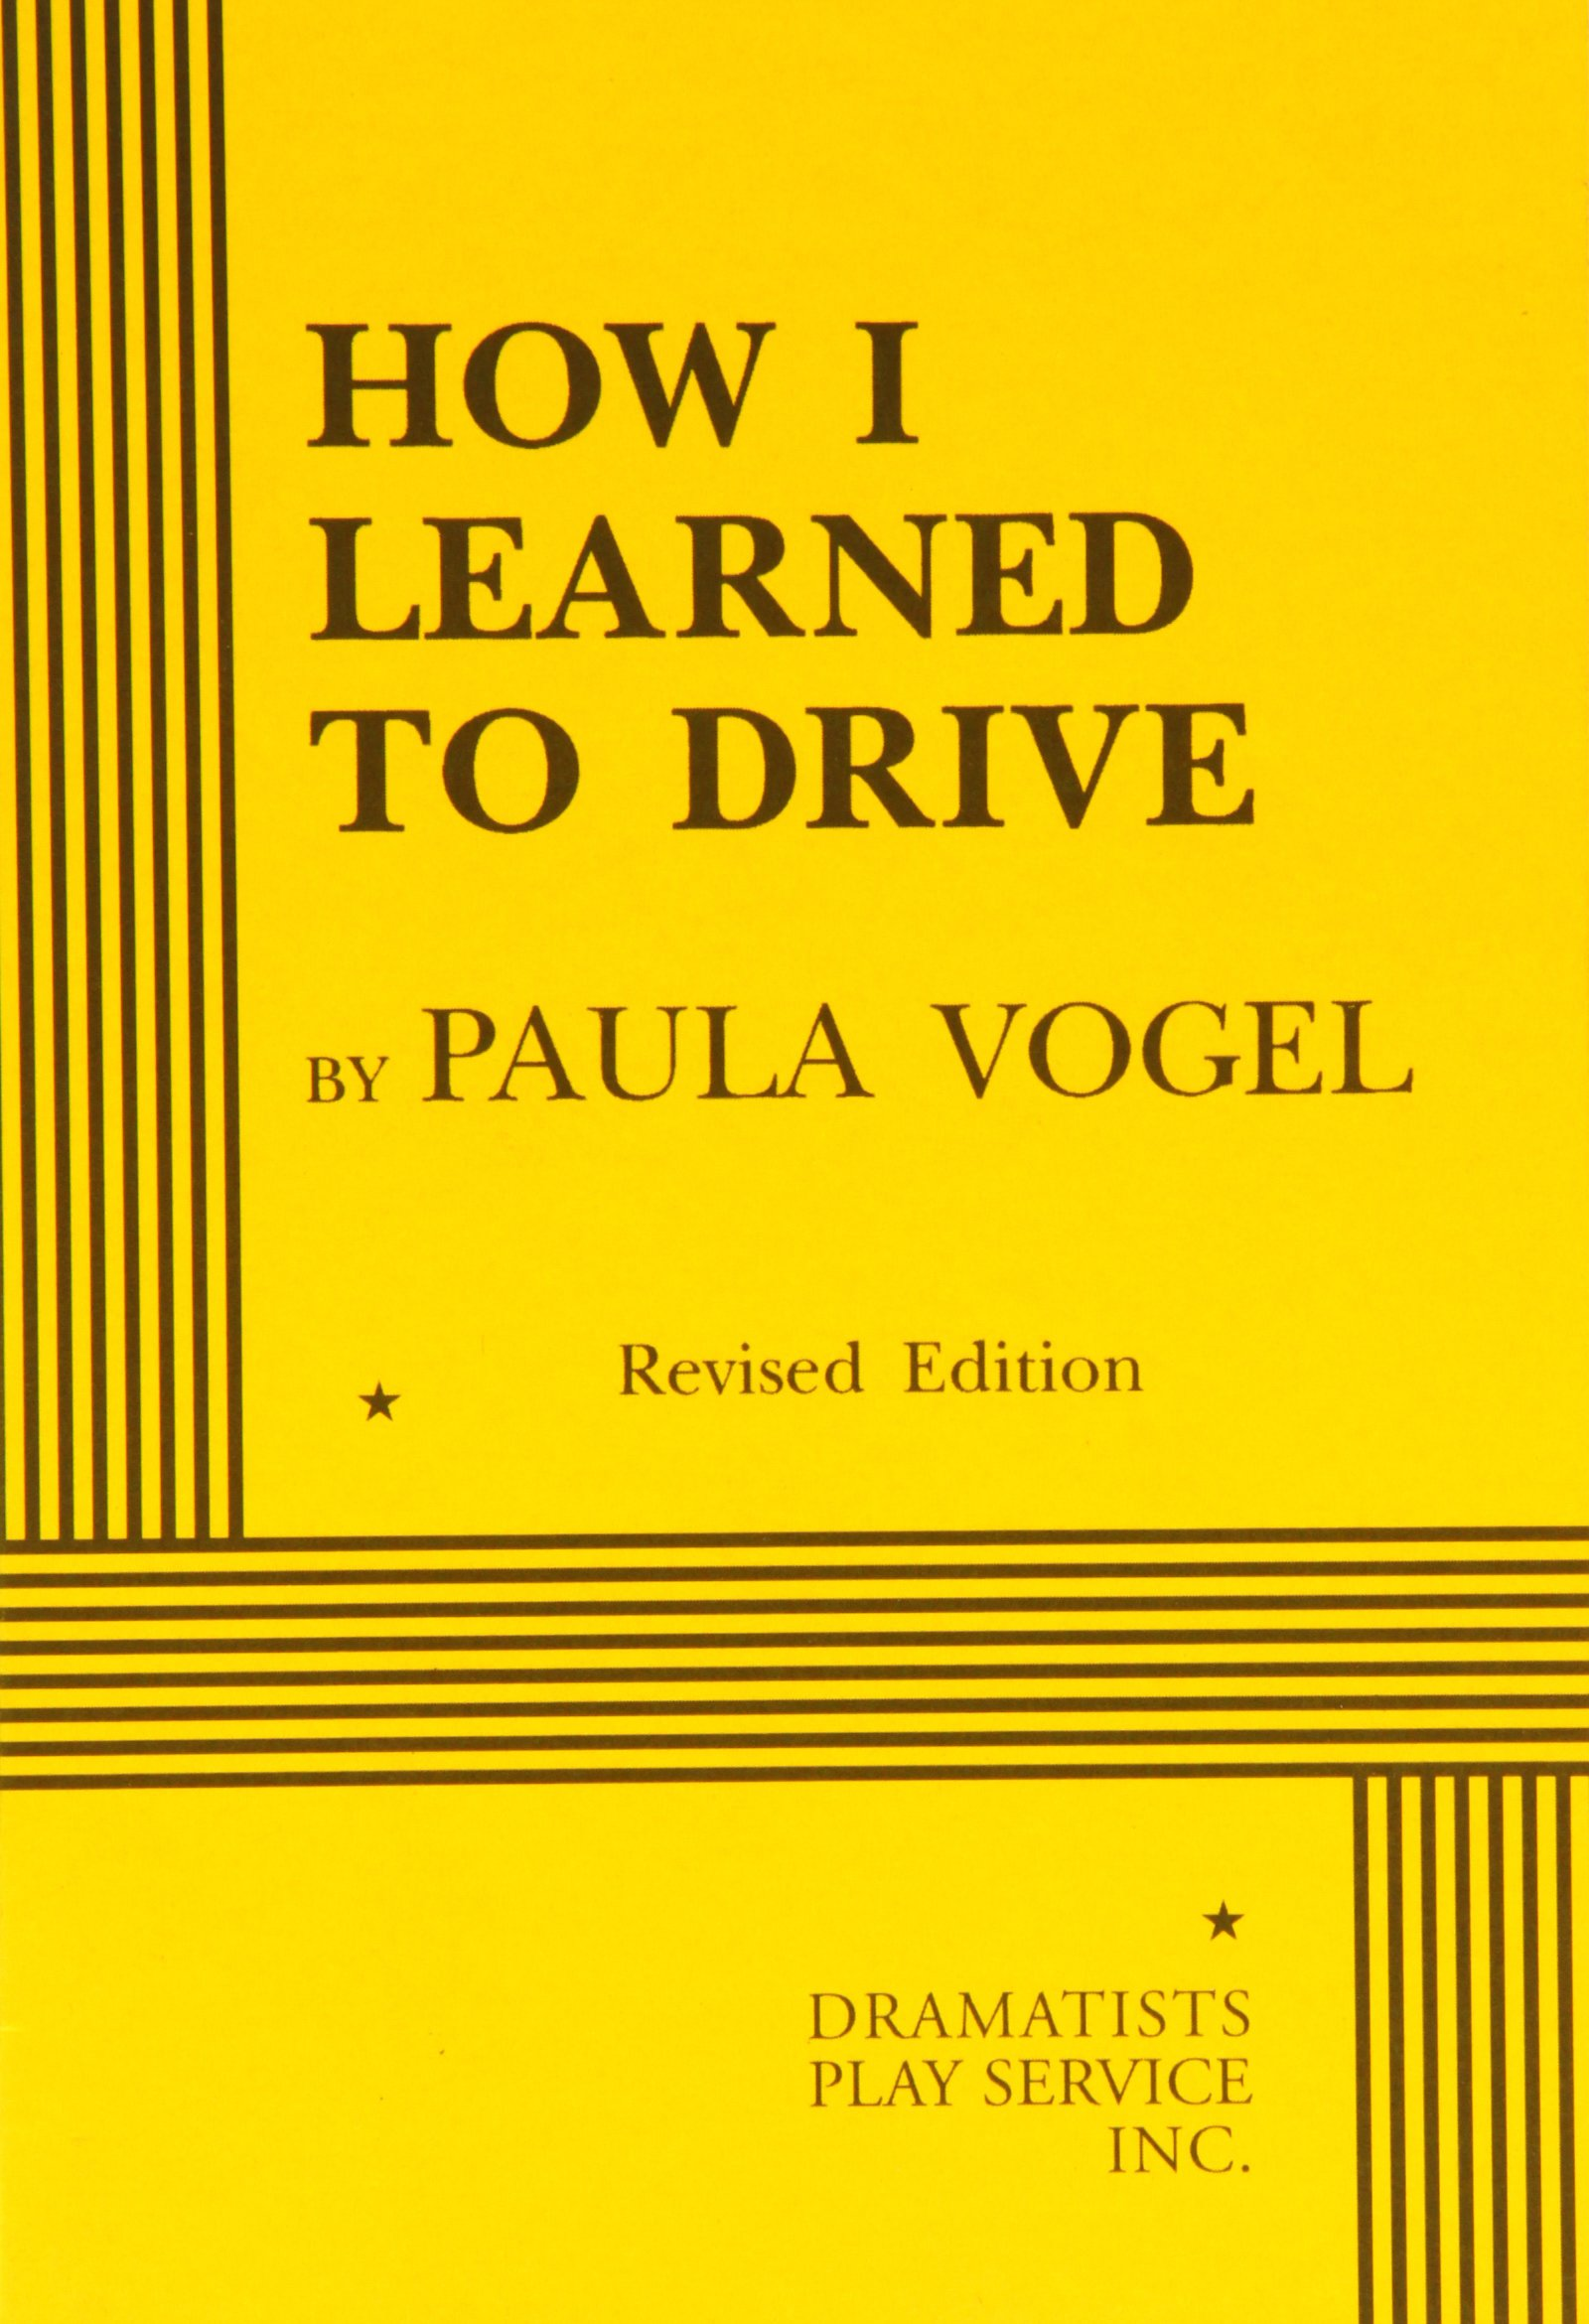 How I Learned to Drive (Acting Edition for Theater Productions)